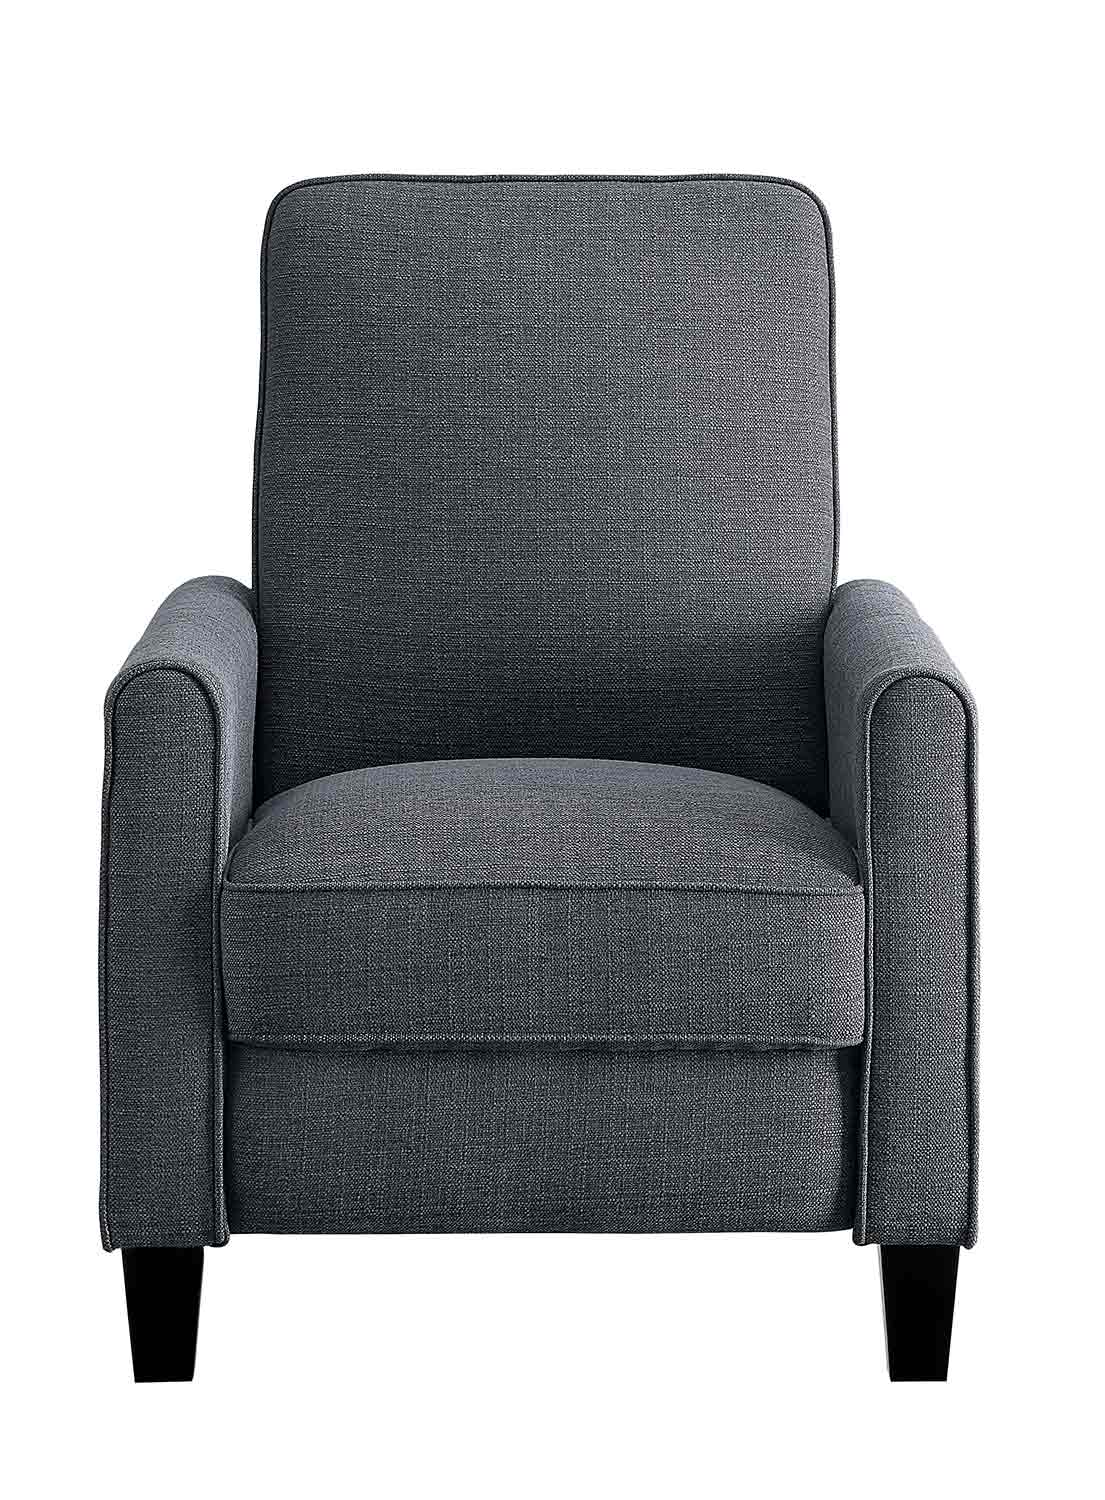 Homelegance Darcel Push Back Reclining Chair - Gray